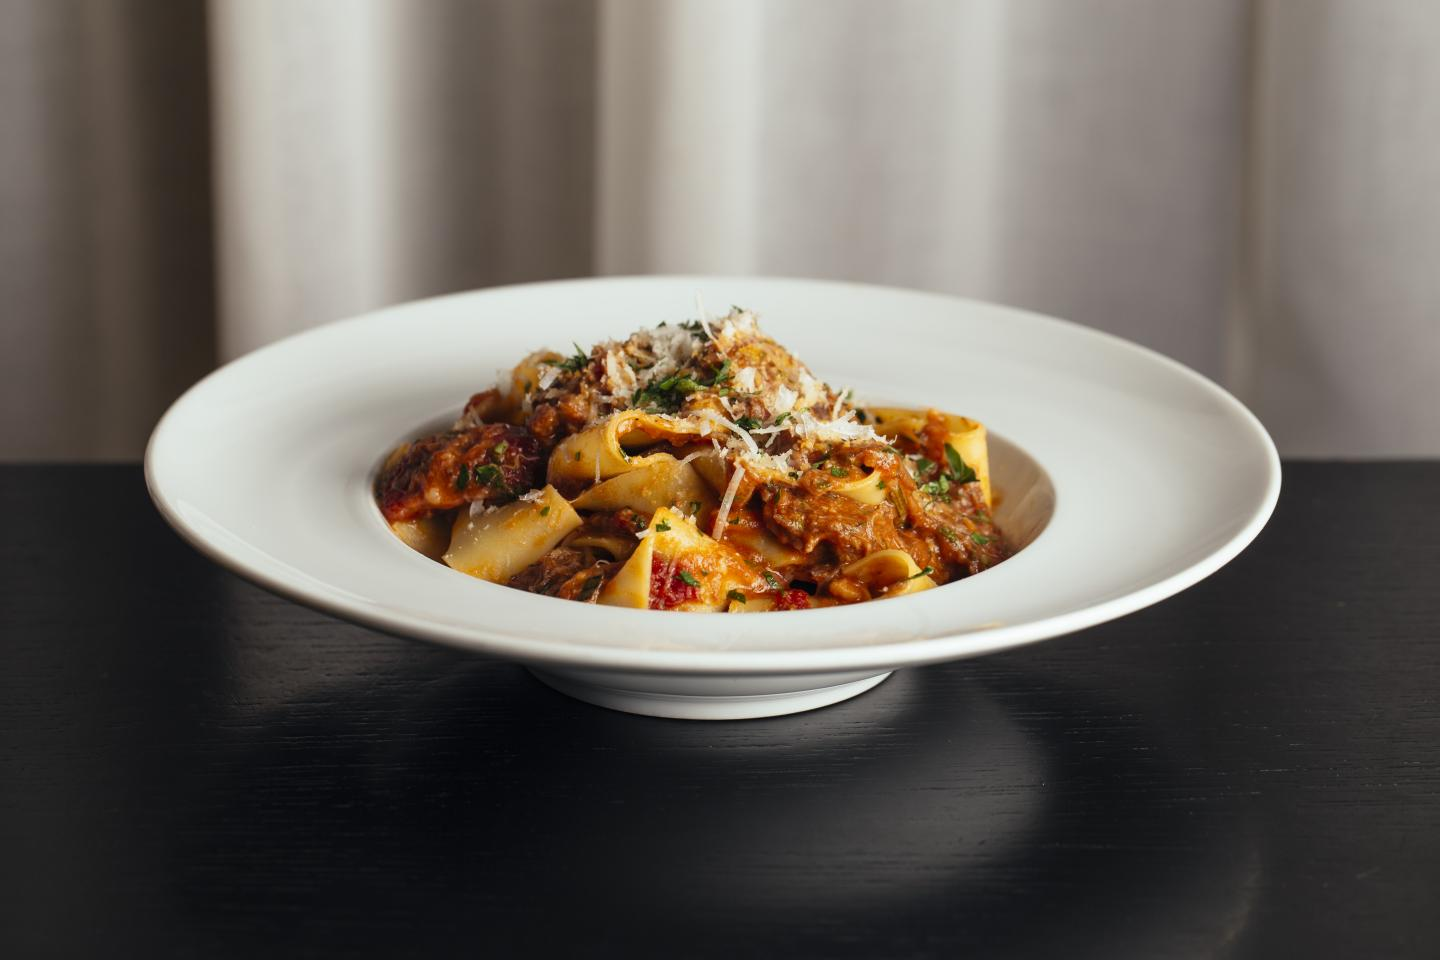 Pappardelle Bolognese from RPM Italian